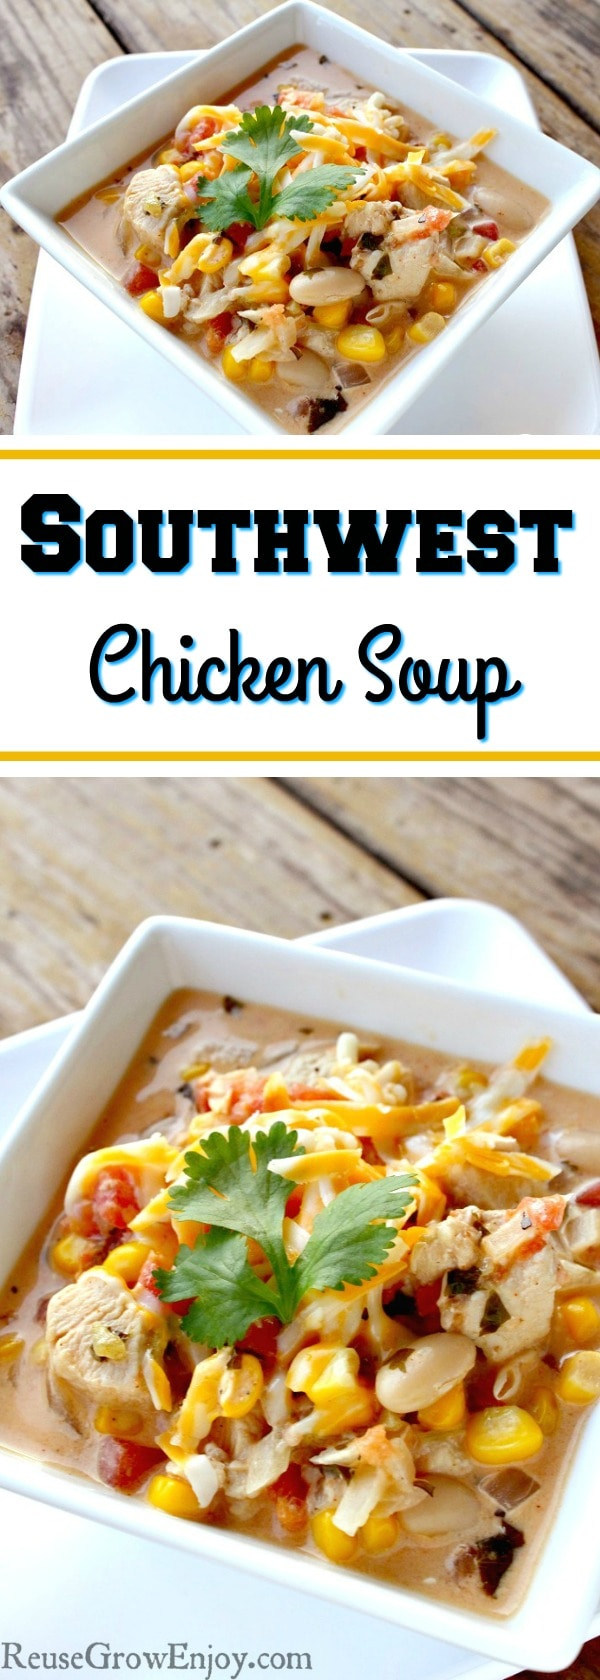 o you ever get sick of eating the same old soups? If you are looking for something different for your taste buds, I have a recipe you have to try. It is a recipe for Southwest Chicken Soup.